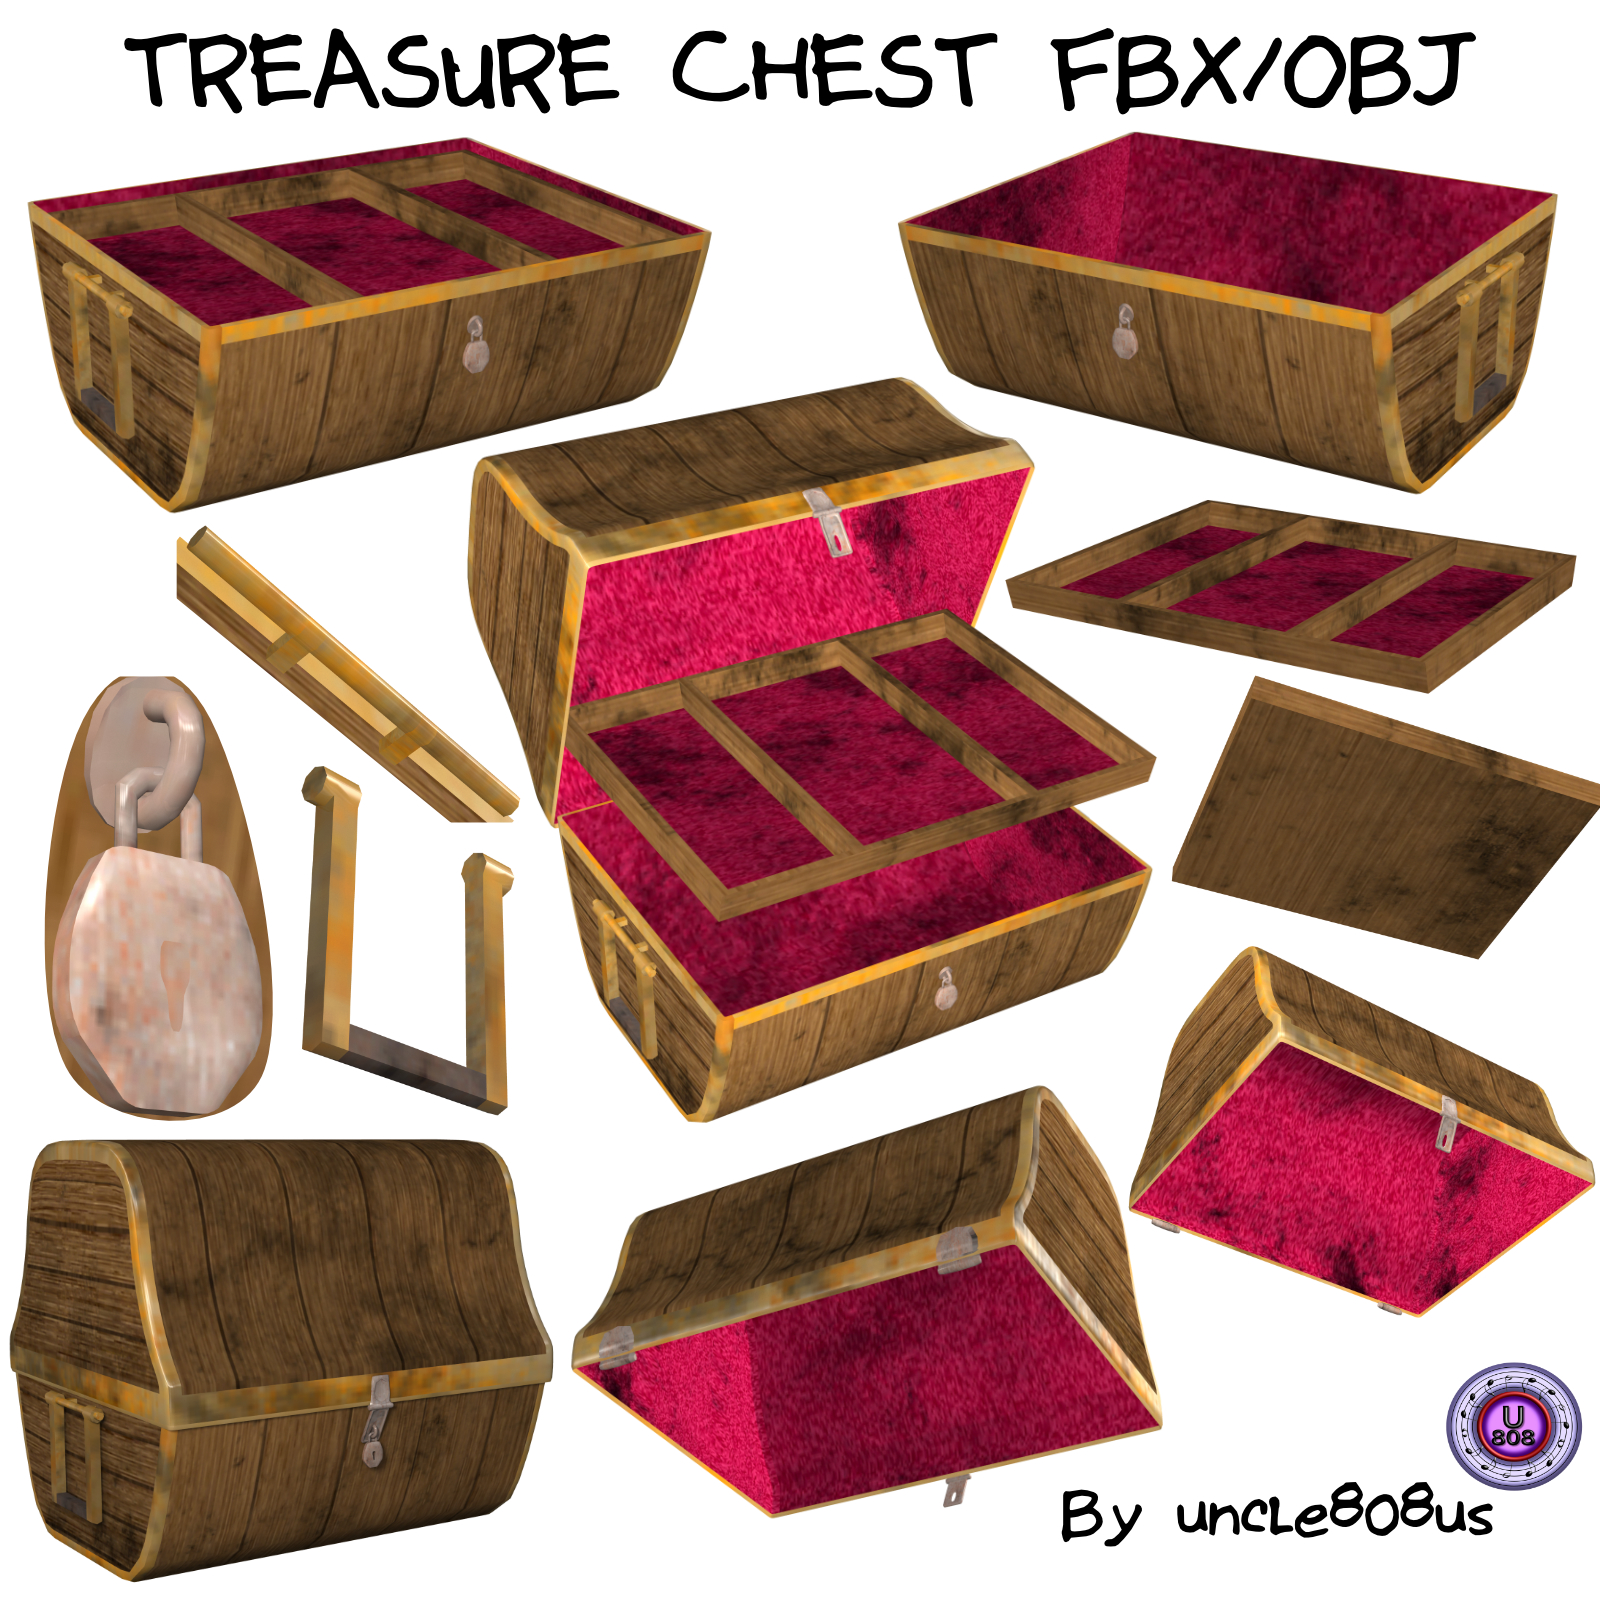 treasure chest fbx obj 3d model fbx 251380